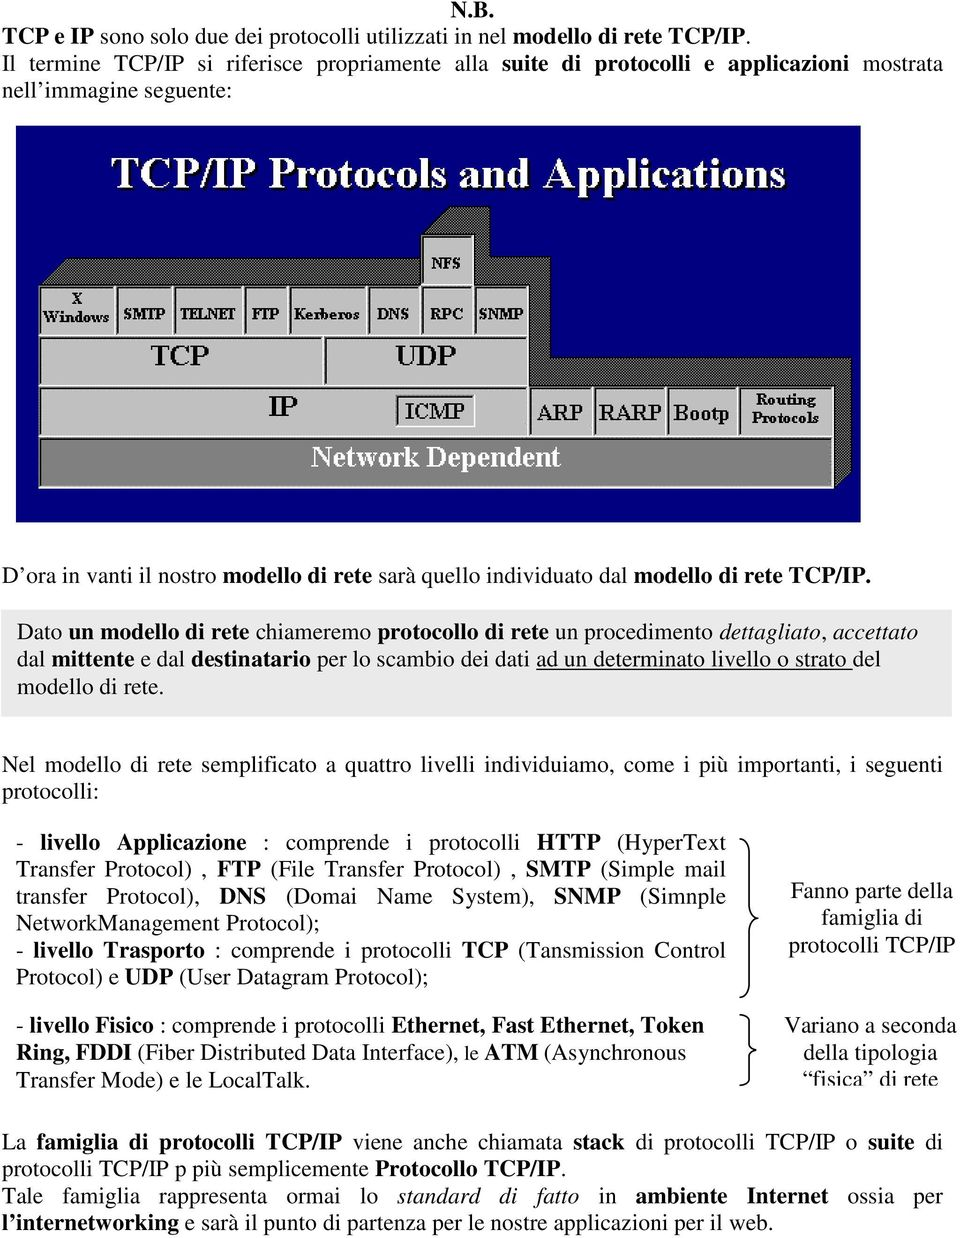 rete TCP/IP.